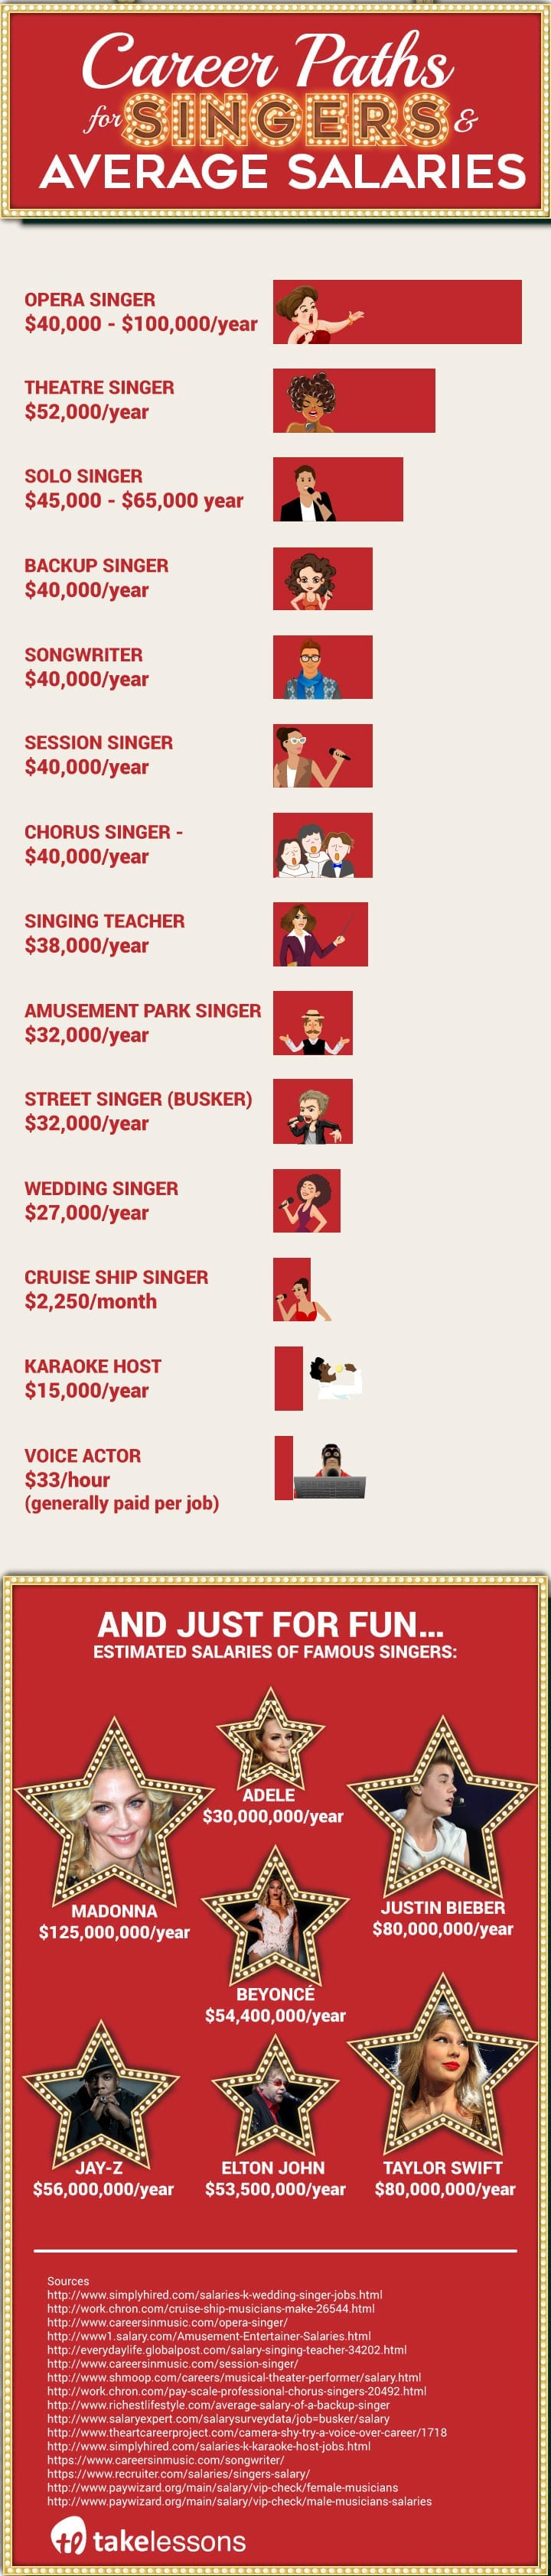 How to become a singer - career paths & average salaries infographic